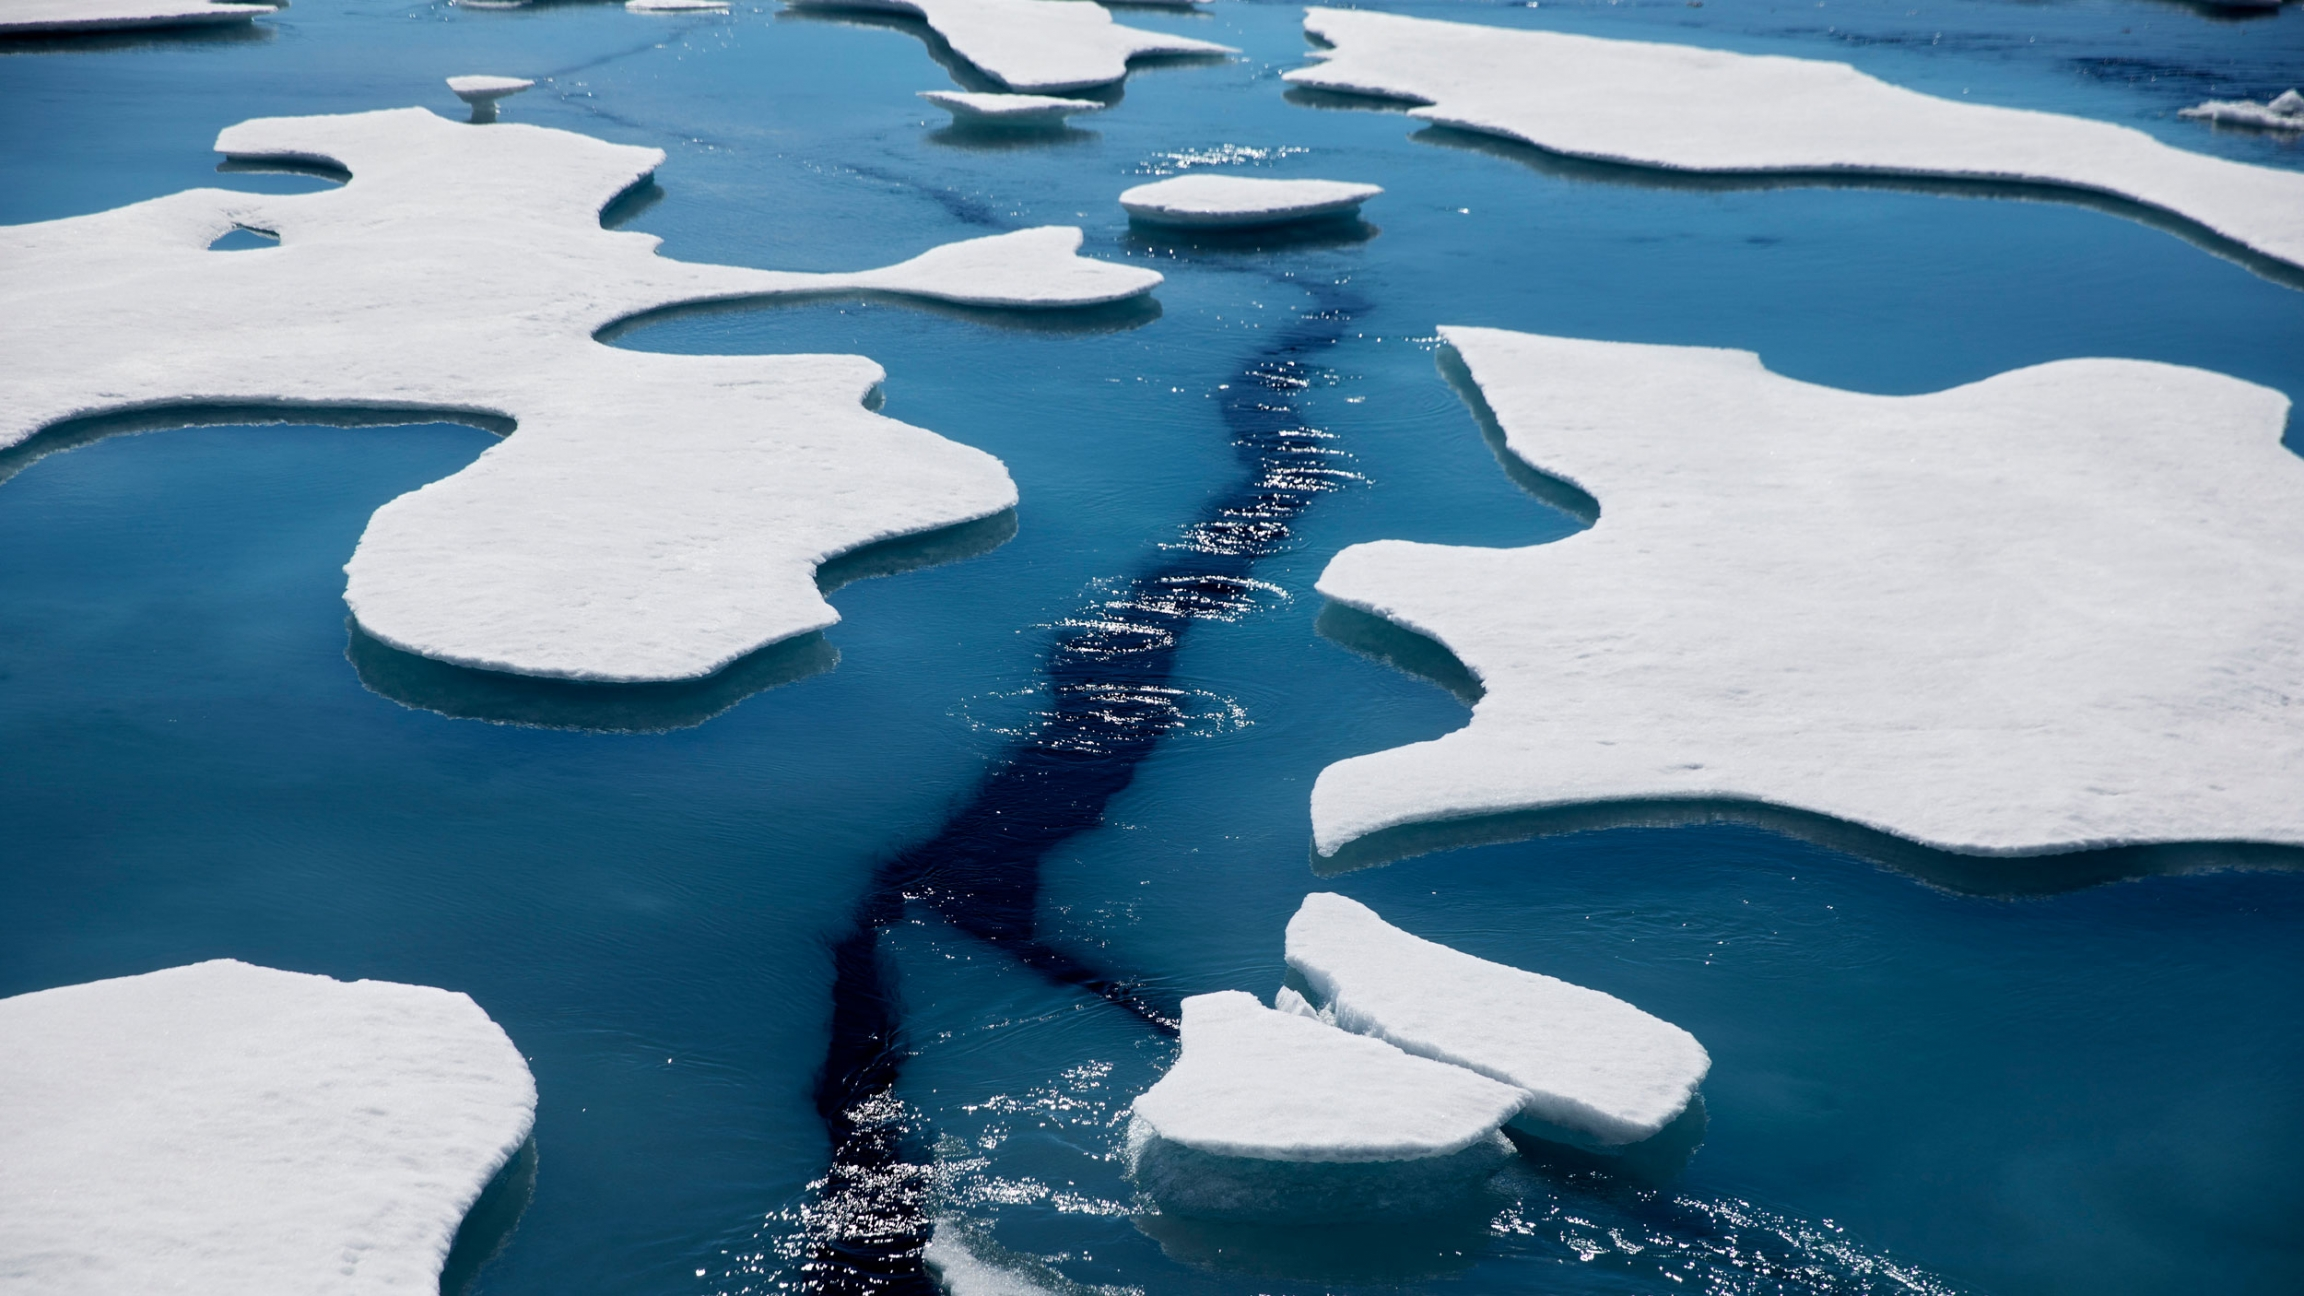 Sea ice breaks apart as the Finnish icebreaker MSV Nordica traverses the Northwest Passage through the Victoria Strait in the Canadian Arctic Archipelago in a Friday, July 21, 2017, file photo.